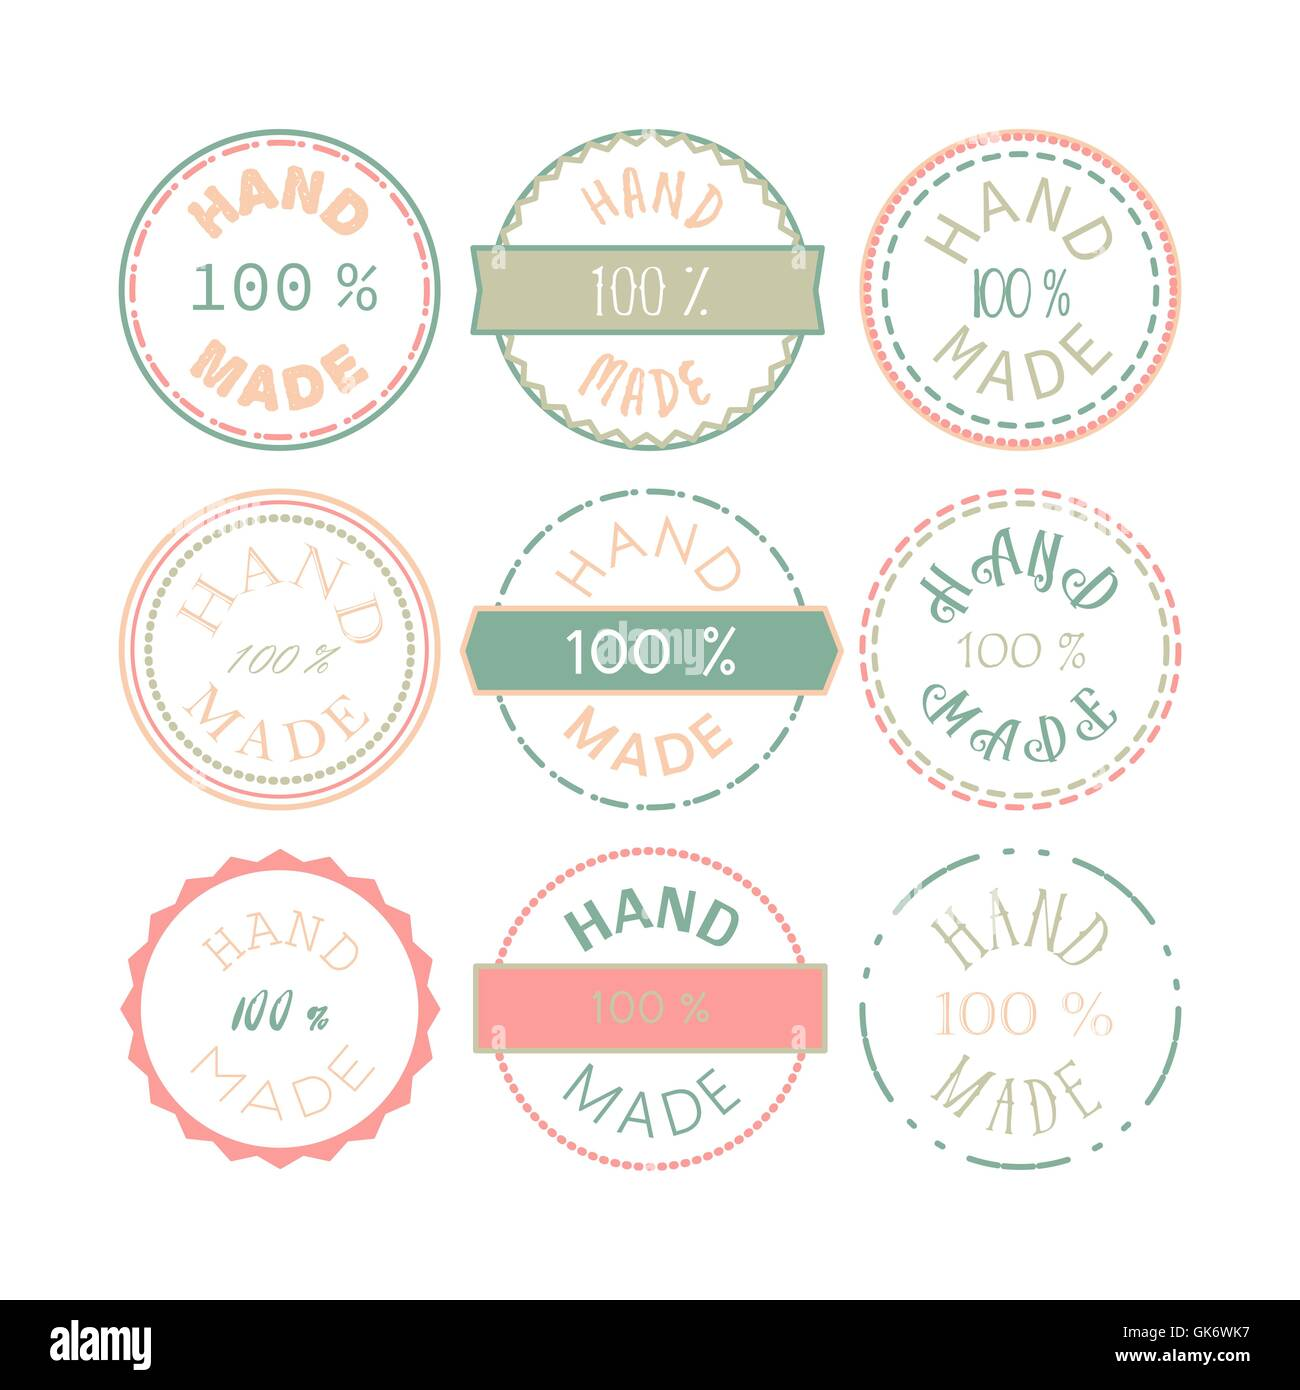 Badge template with 100 handmade product symbol vintage sticker badge template with 100 handmade product symbol vintage sticker with text 100 hand made 100 percents hand made design element buycottarizona Image collections